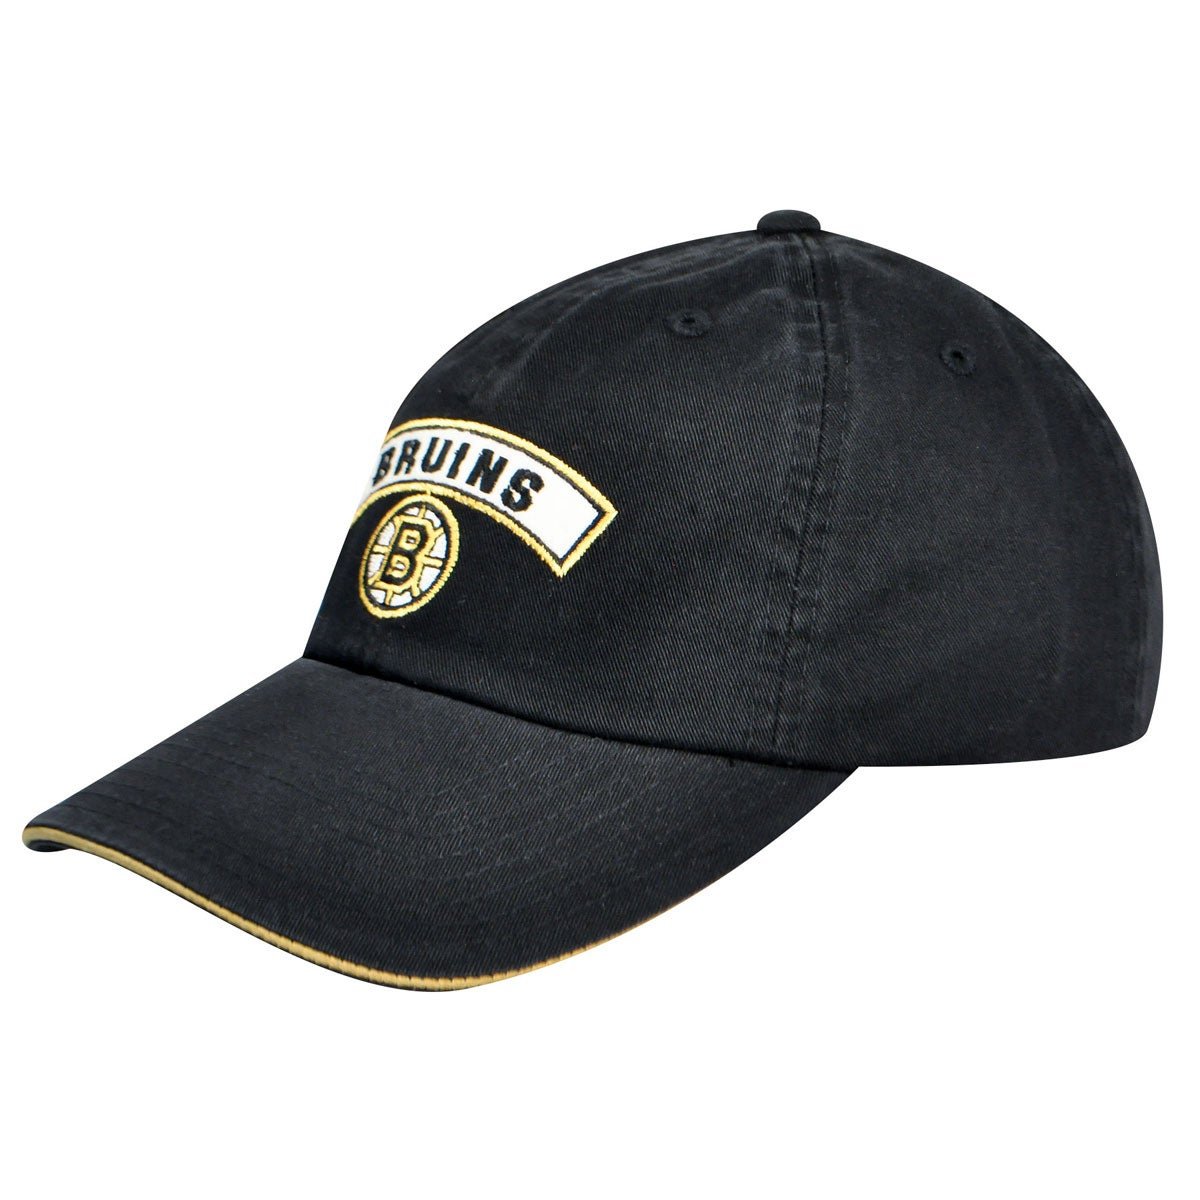 Eclipse Bruins Mikey in Black